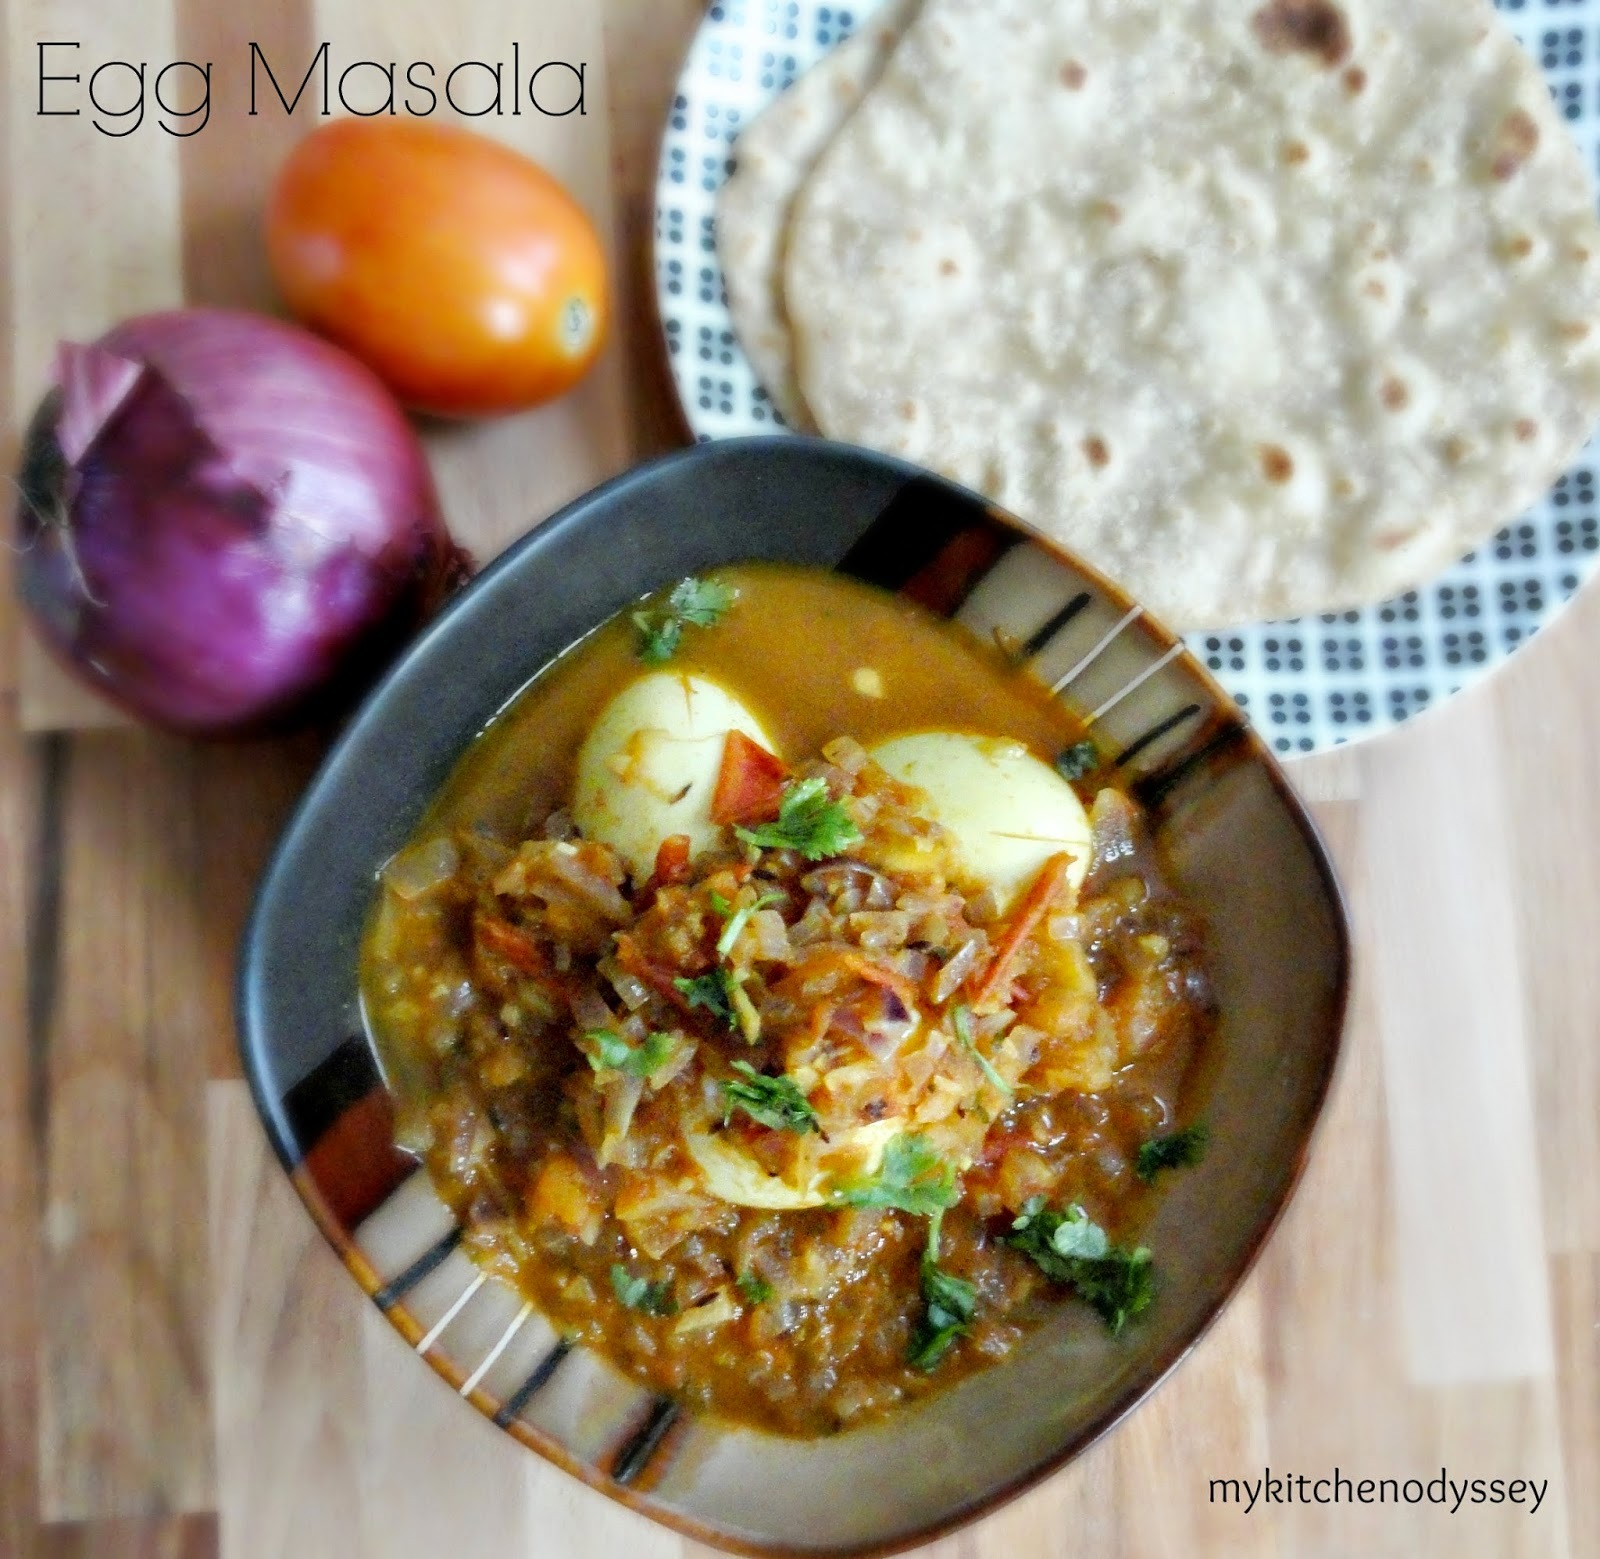 Egg Curry/How To Make Egg Masala